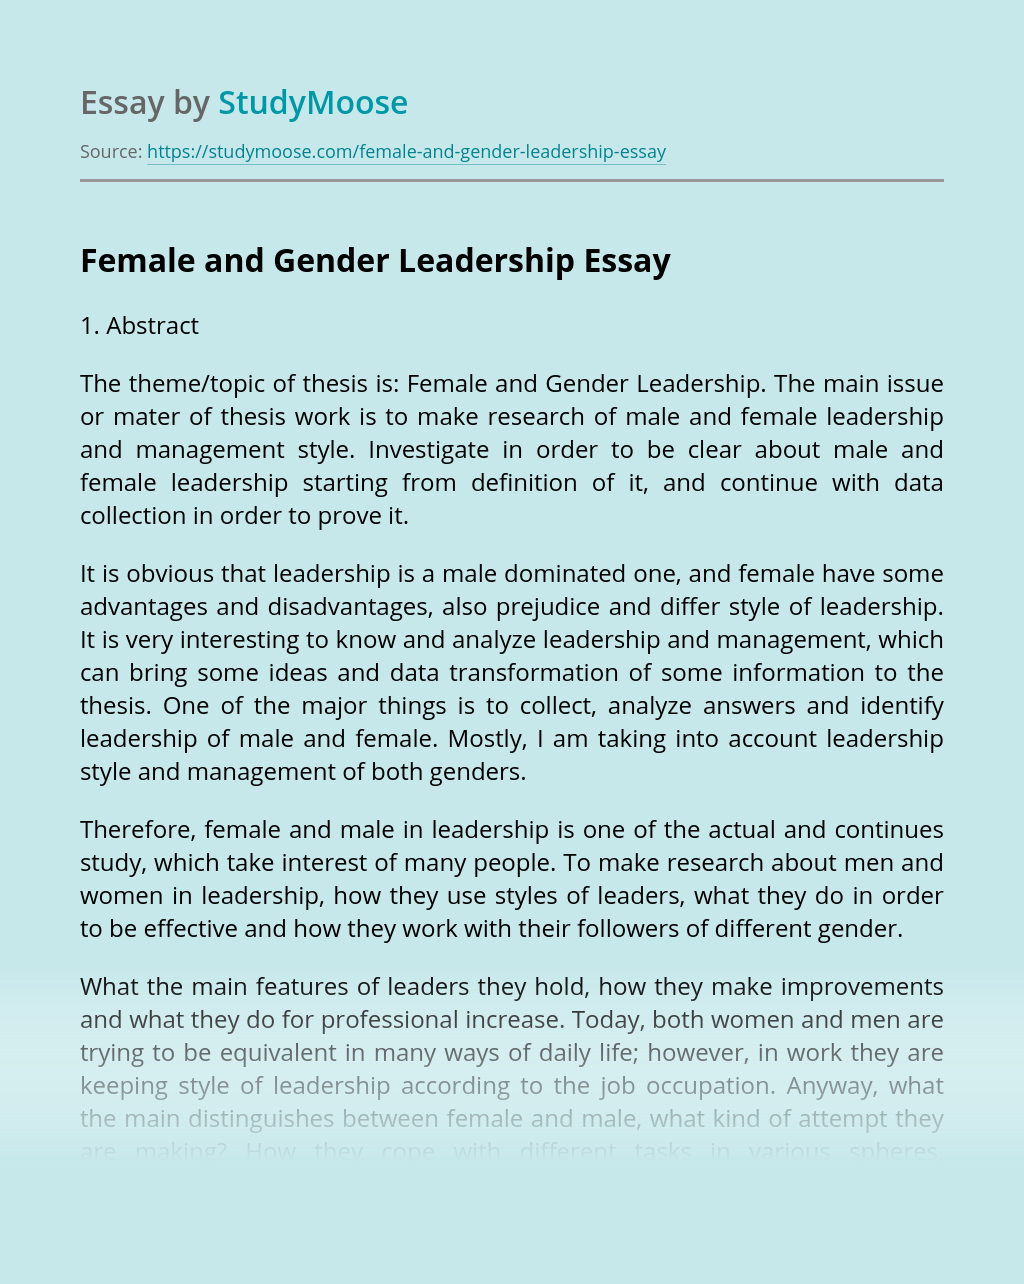 Female and Gender Leadership